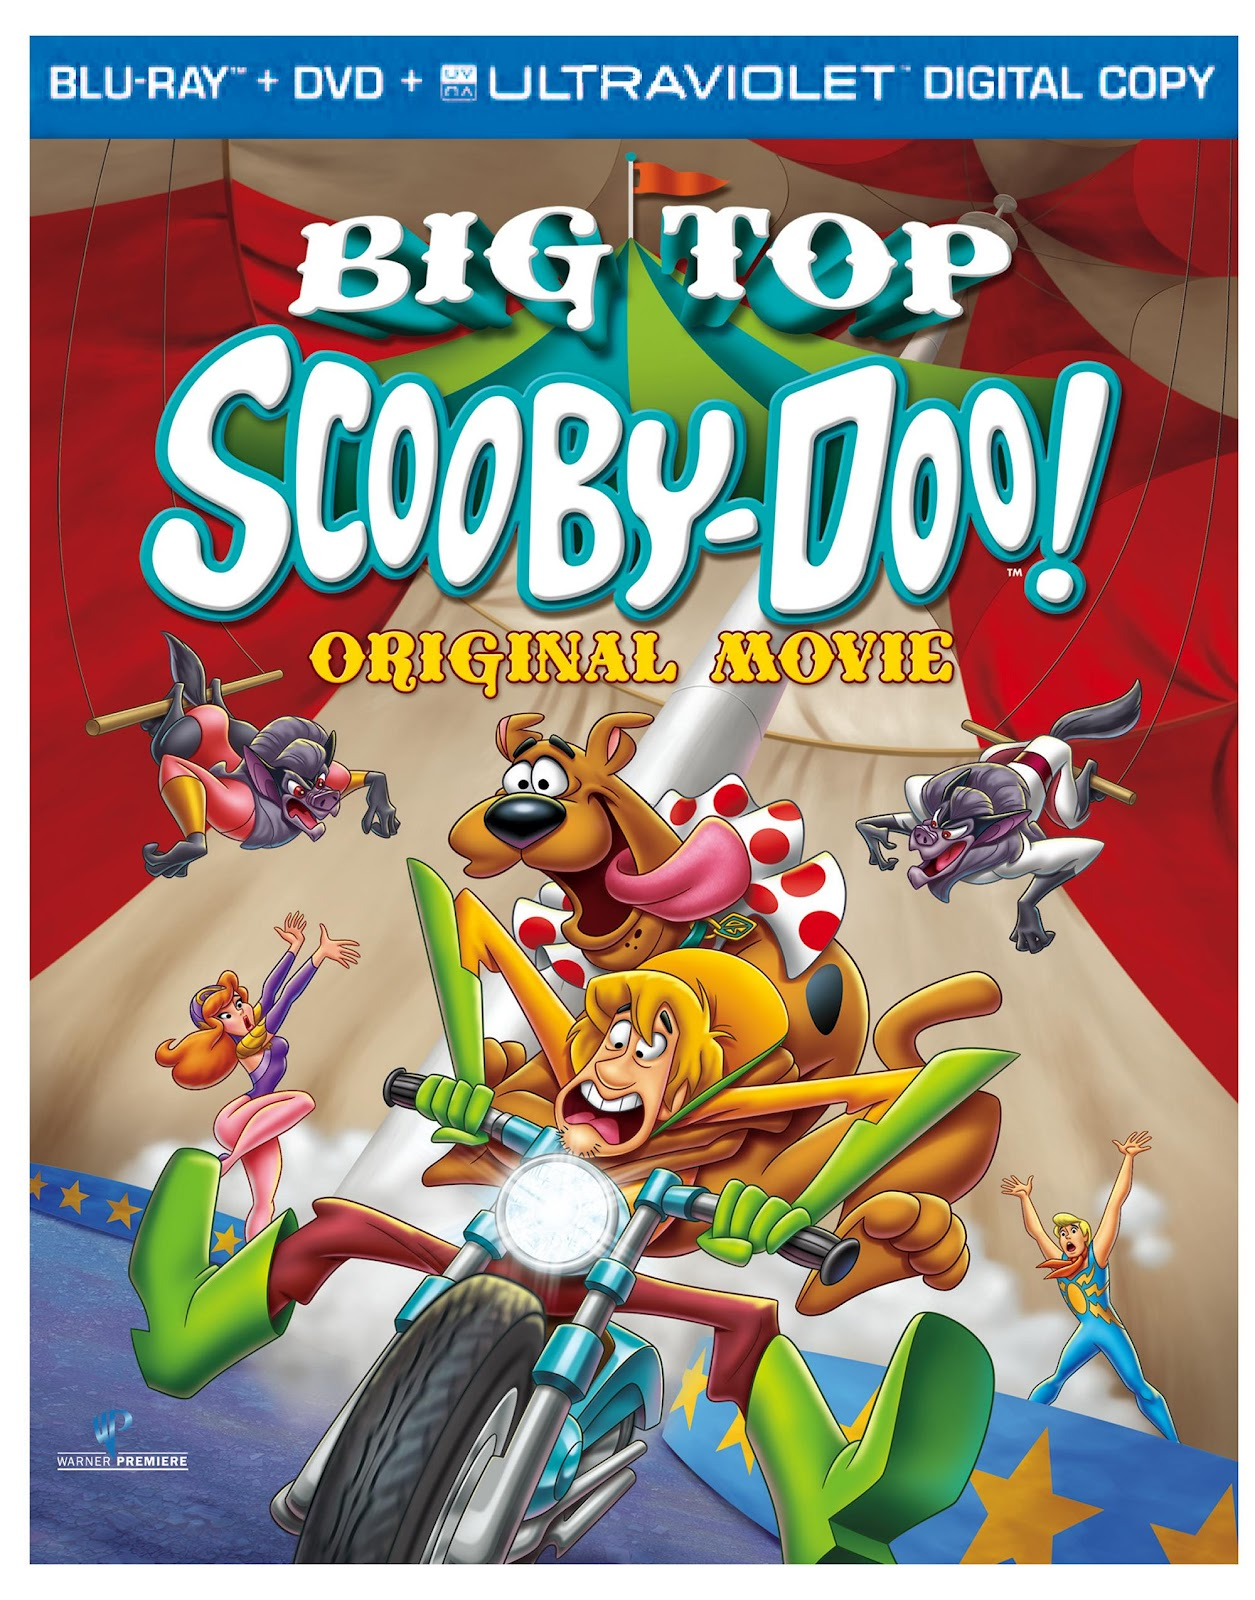 Big top scooby doo movie on blu ray oct 9th frugal - Scooby doo momie ...